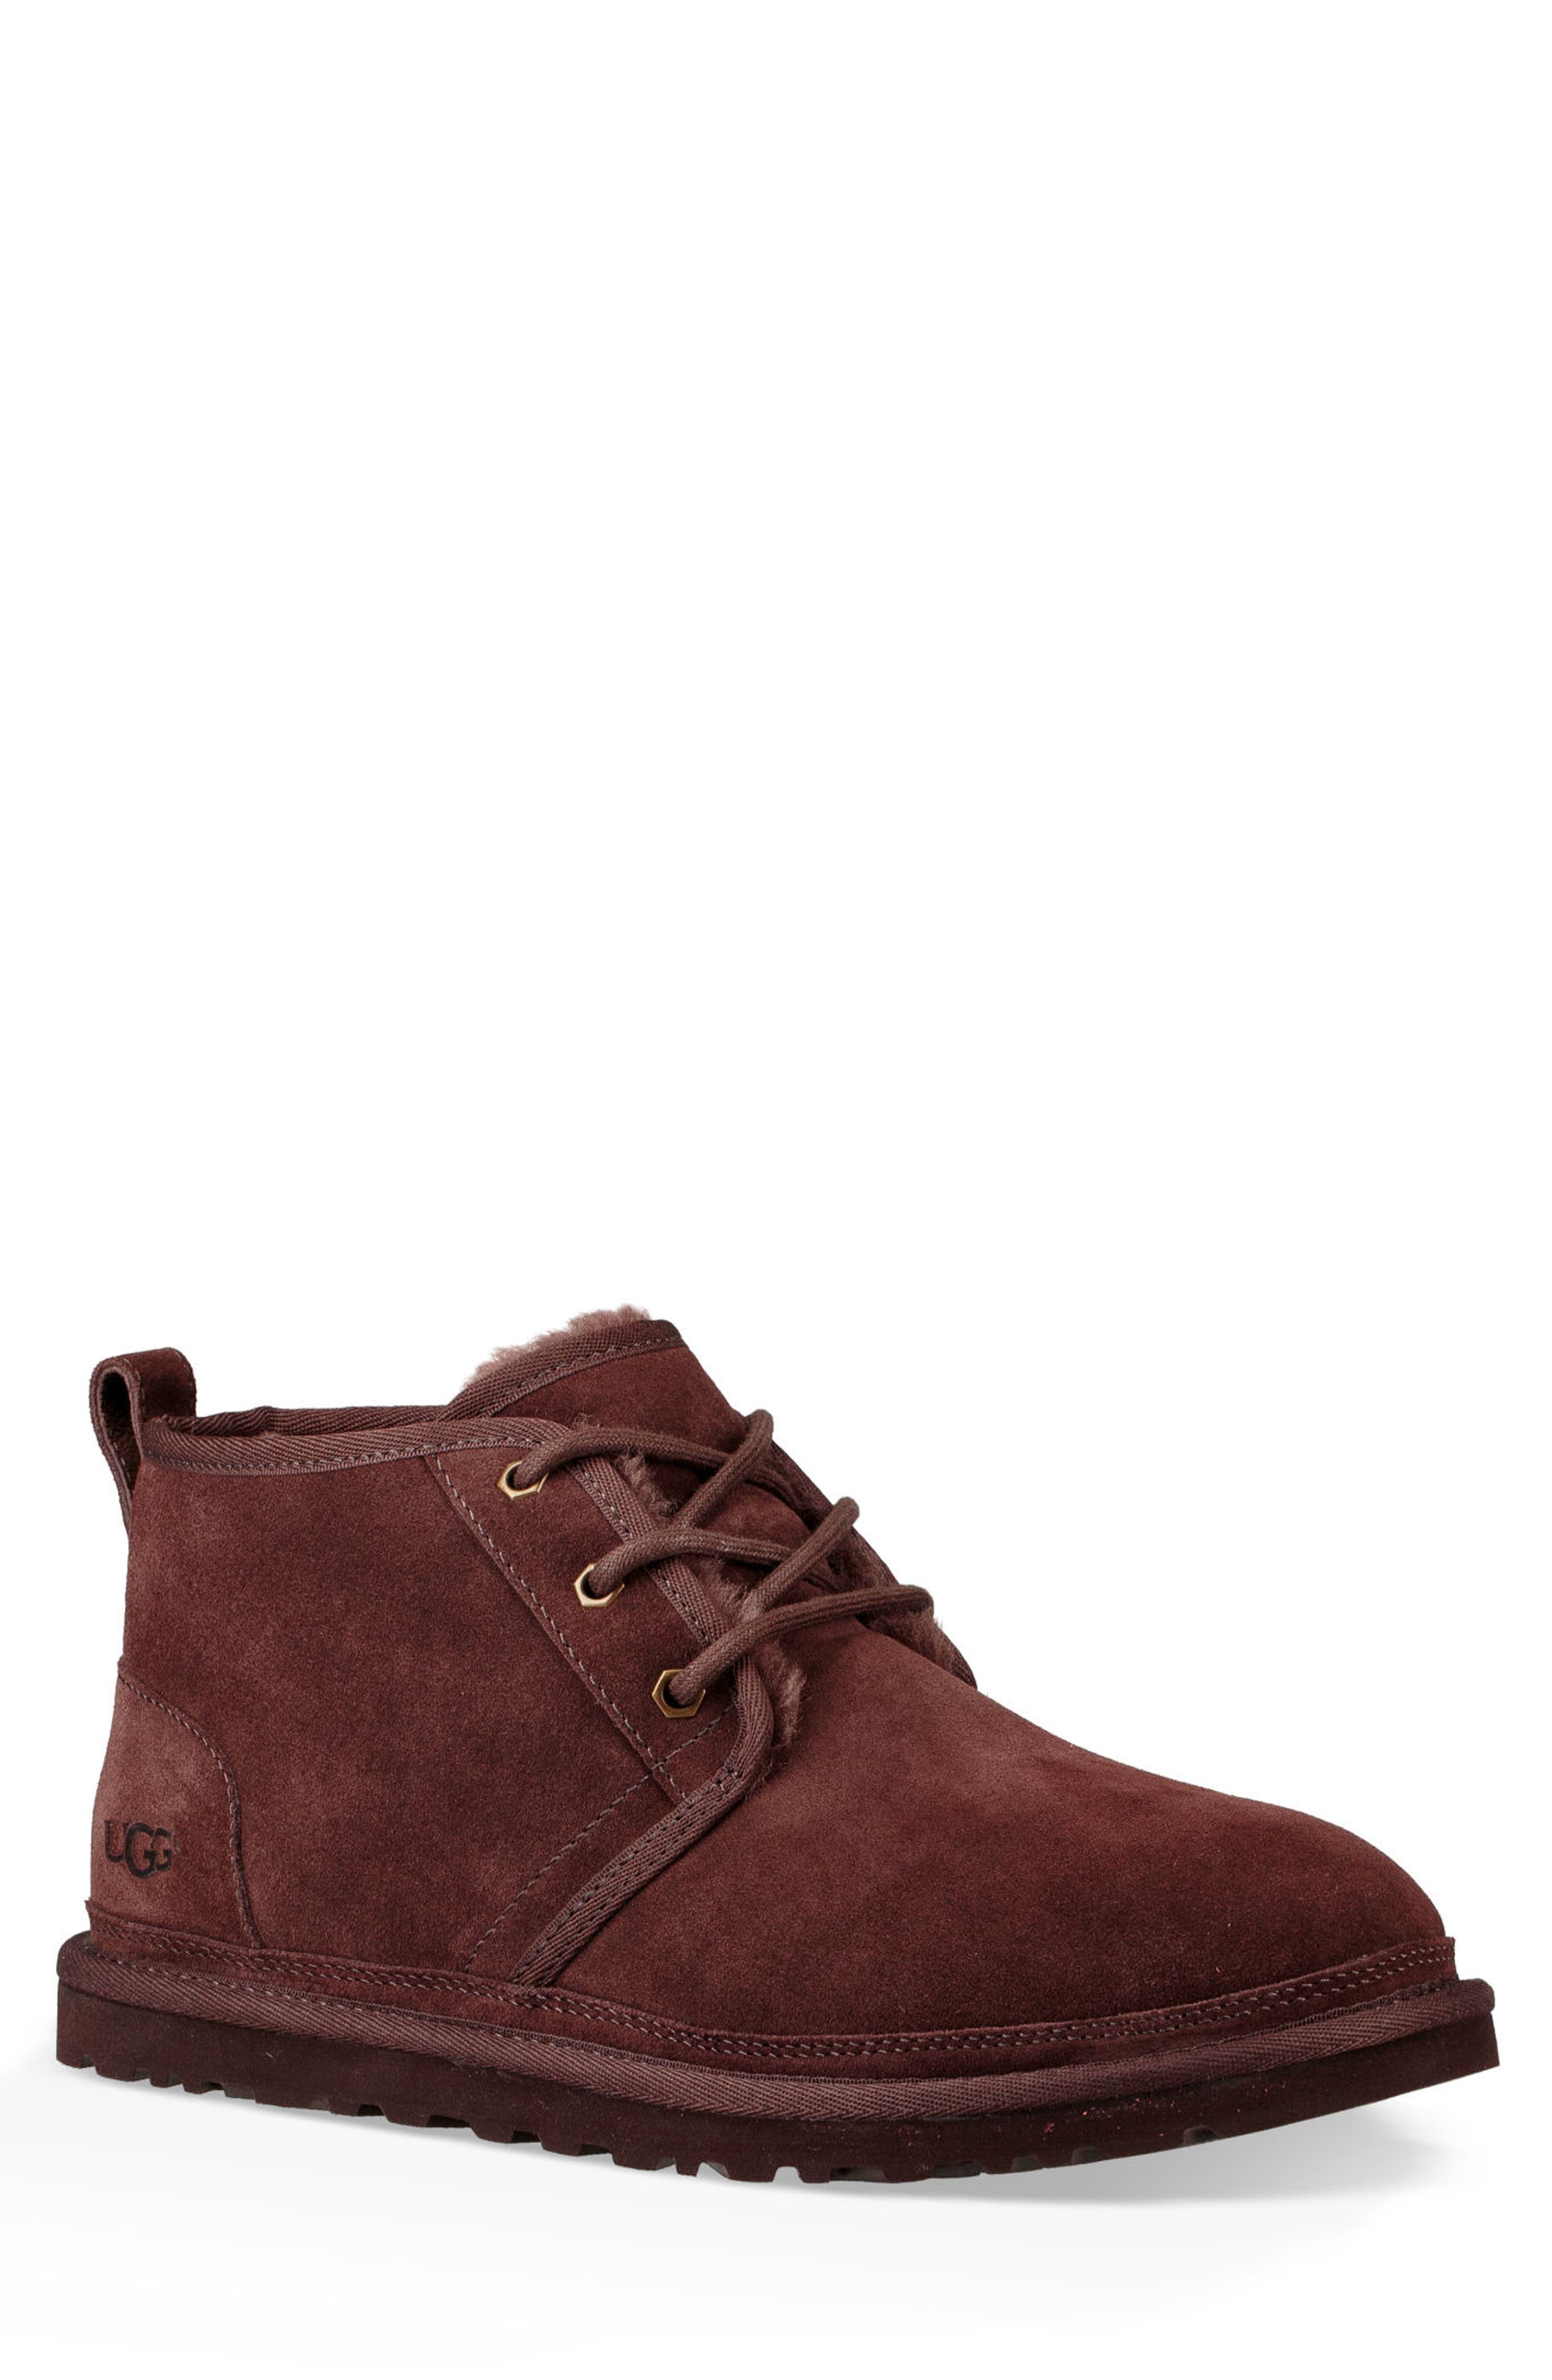 Neumel Chukka Boot,                             Main thumbnail 1, color,                             ESPRESSO SUEDE